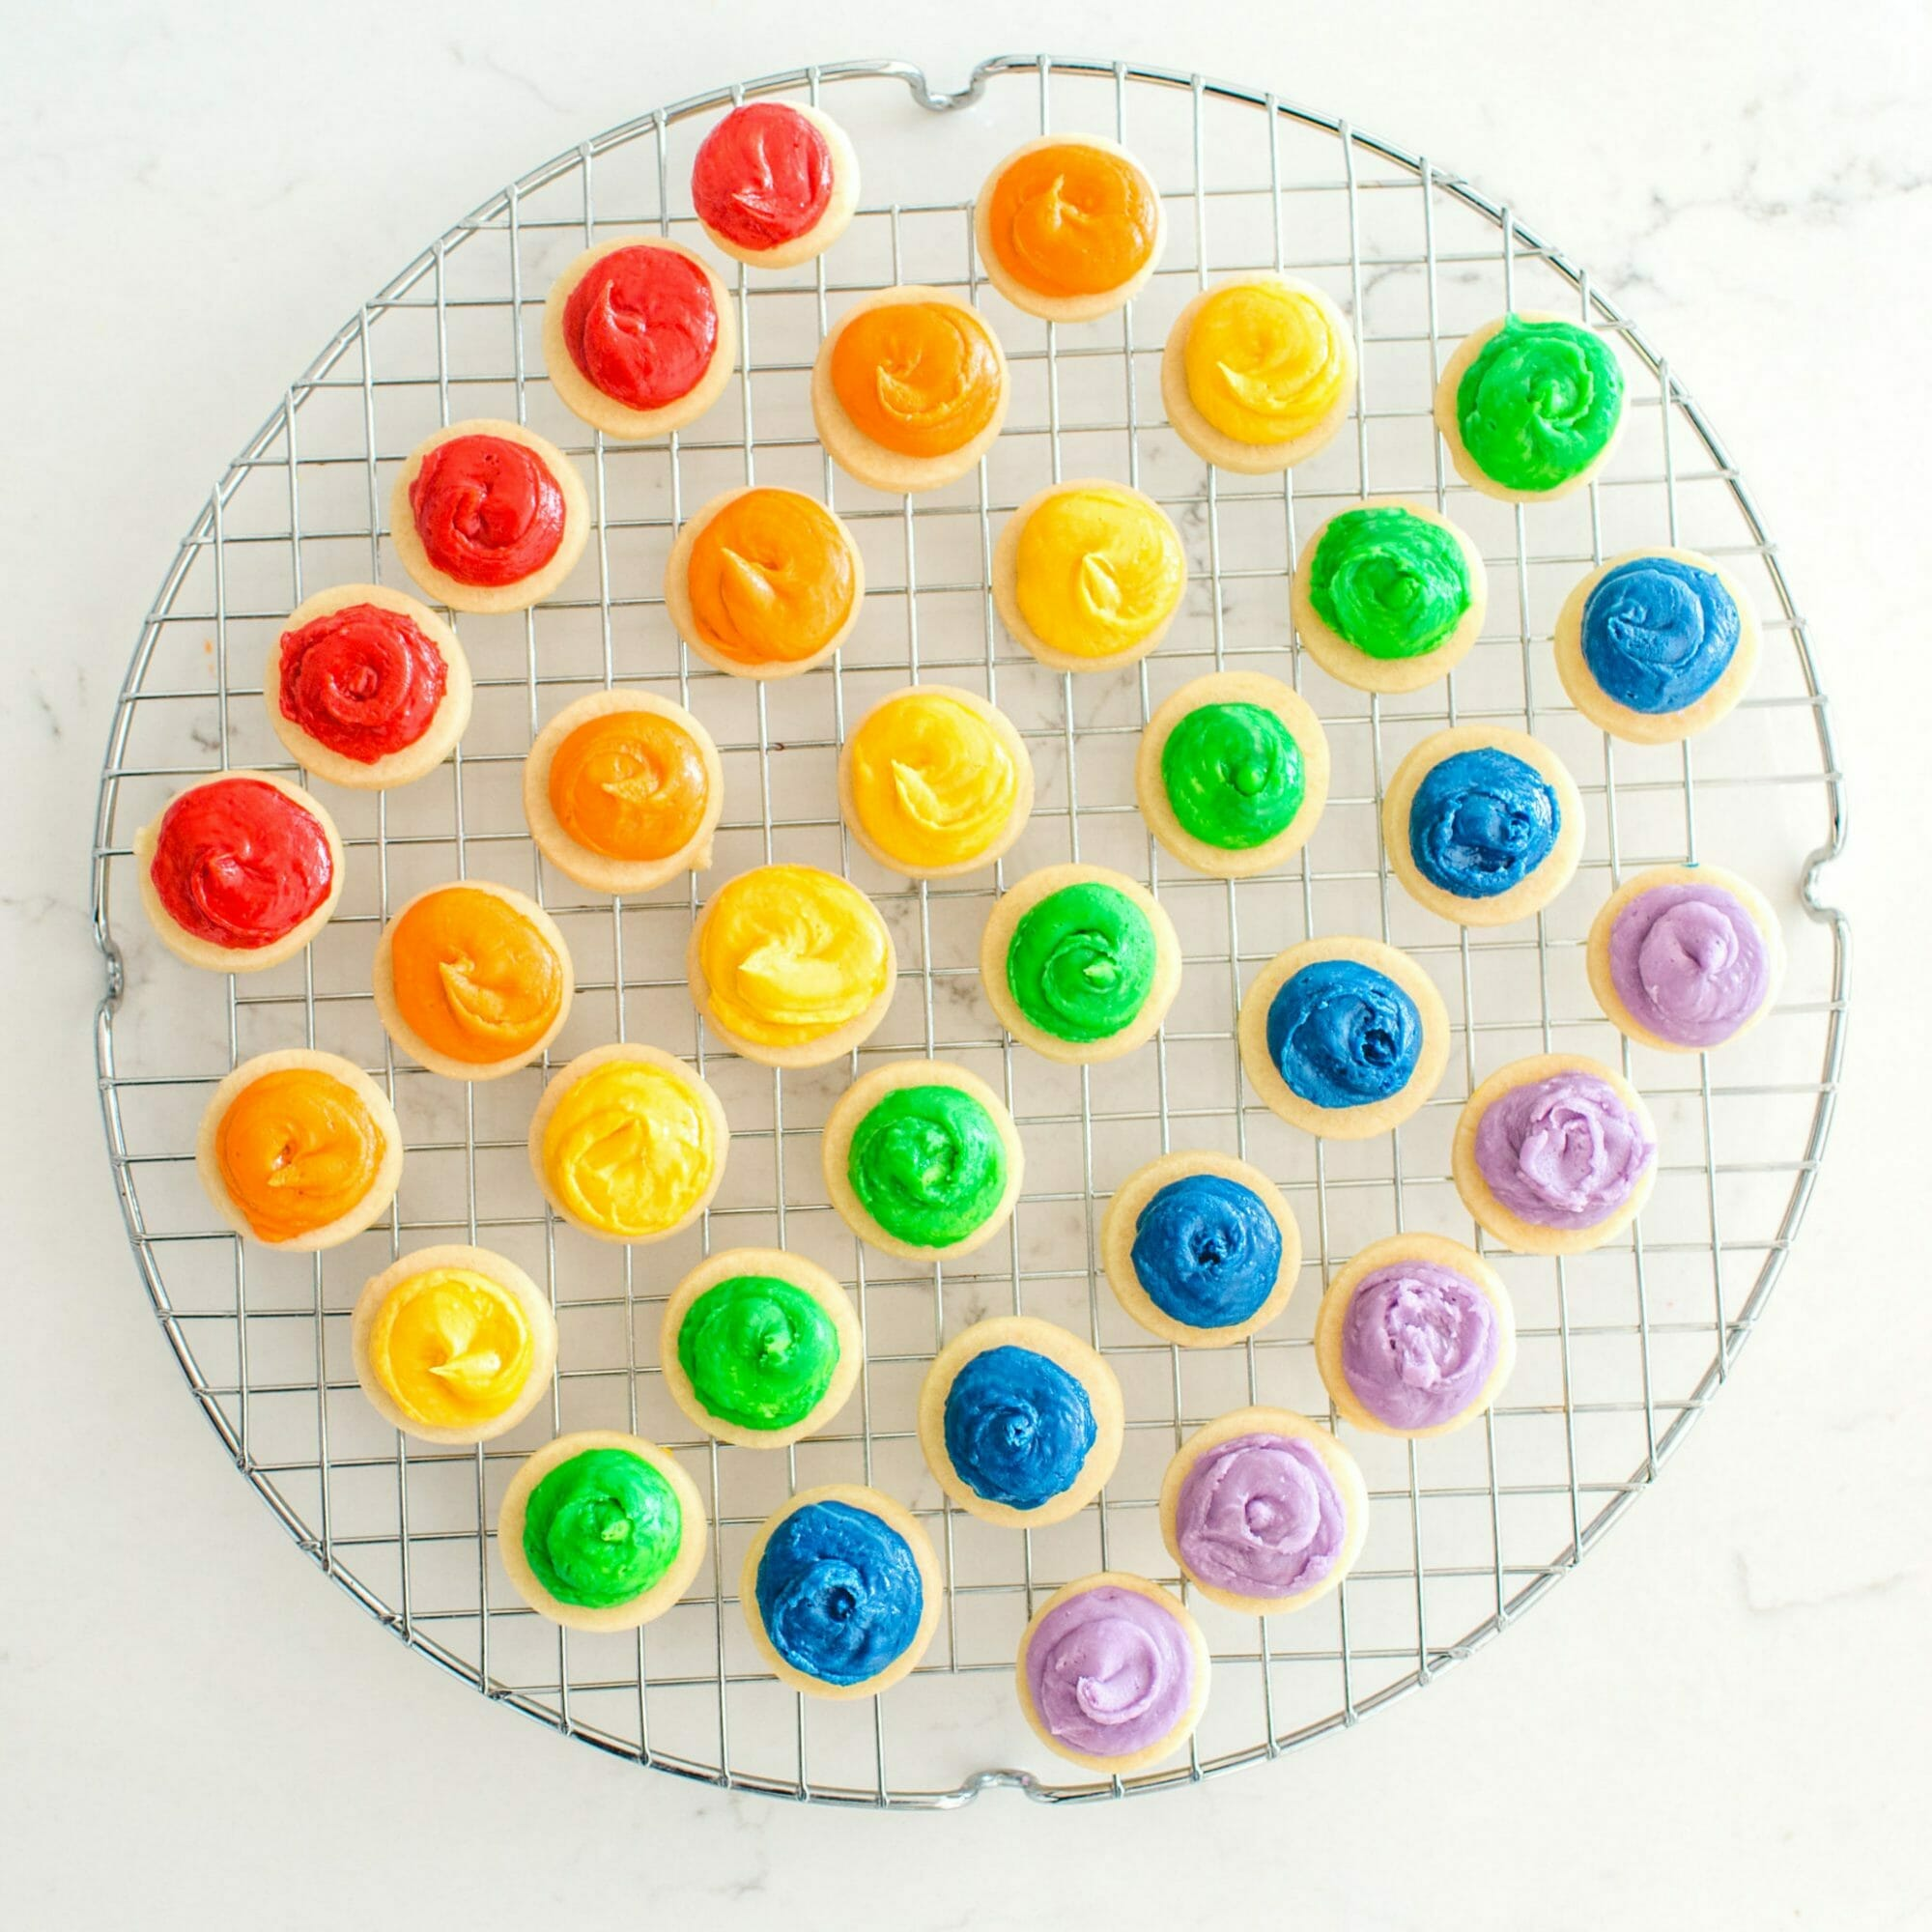 Our St. Patrick's Day Rainbow Treat Board makes for a perfect St. Paddy's day dessert! || JennyCookies.com #stpatricksday #rainbow #stpatricksdaydesserts #jennycookies